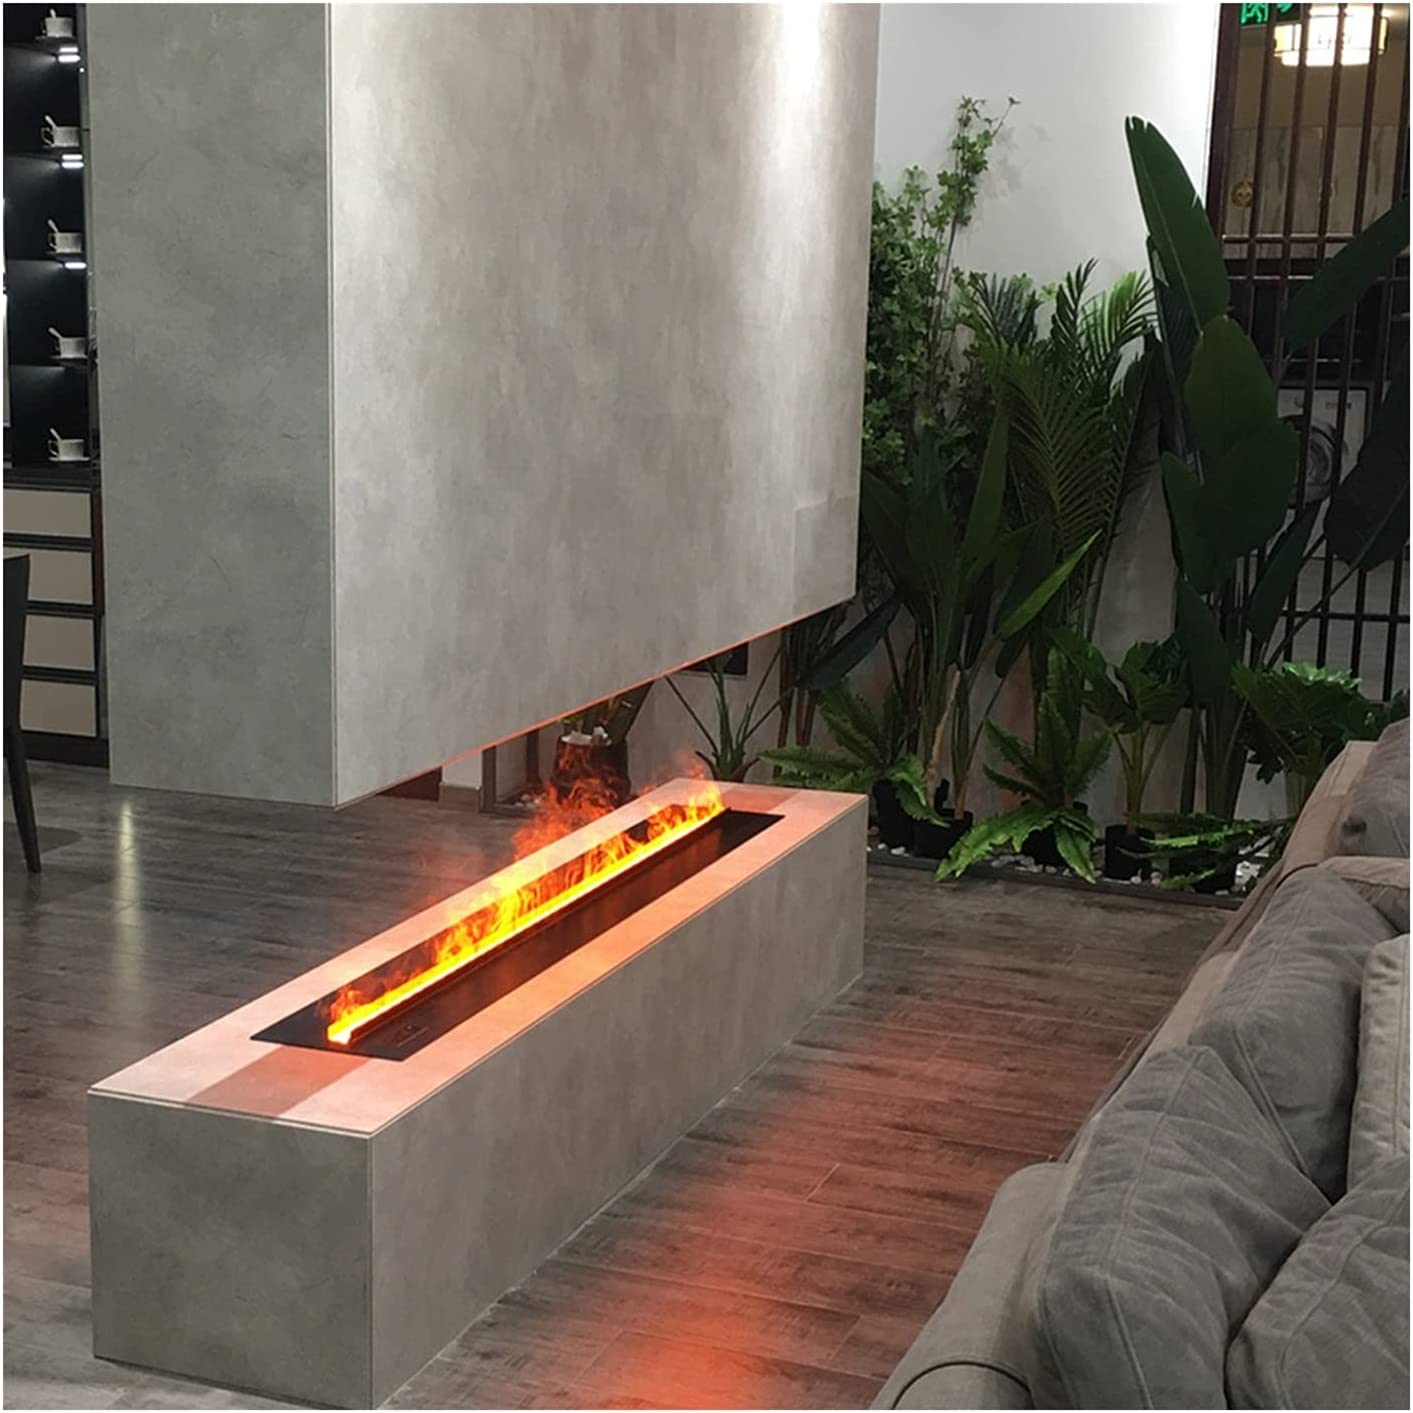 Electric Max 72% OFF Fireplace shipfree 39.4